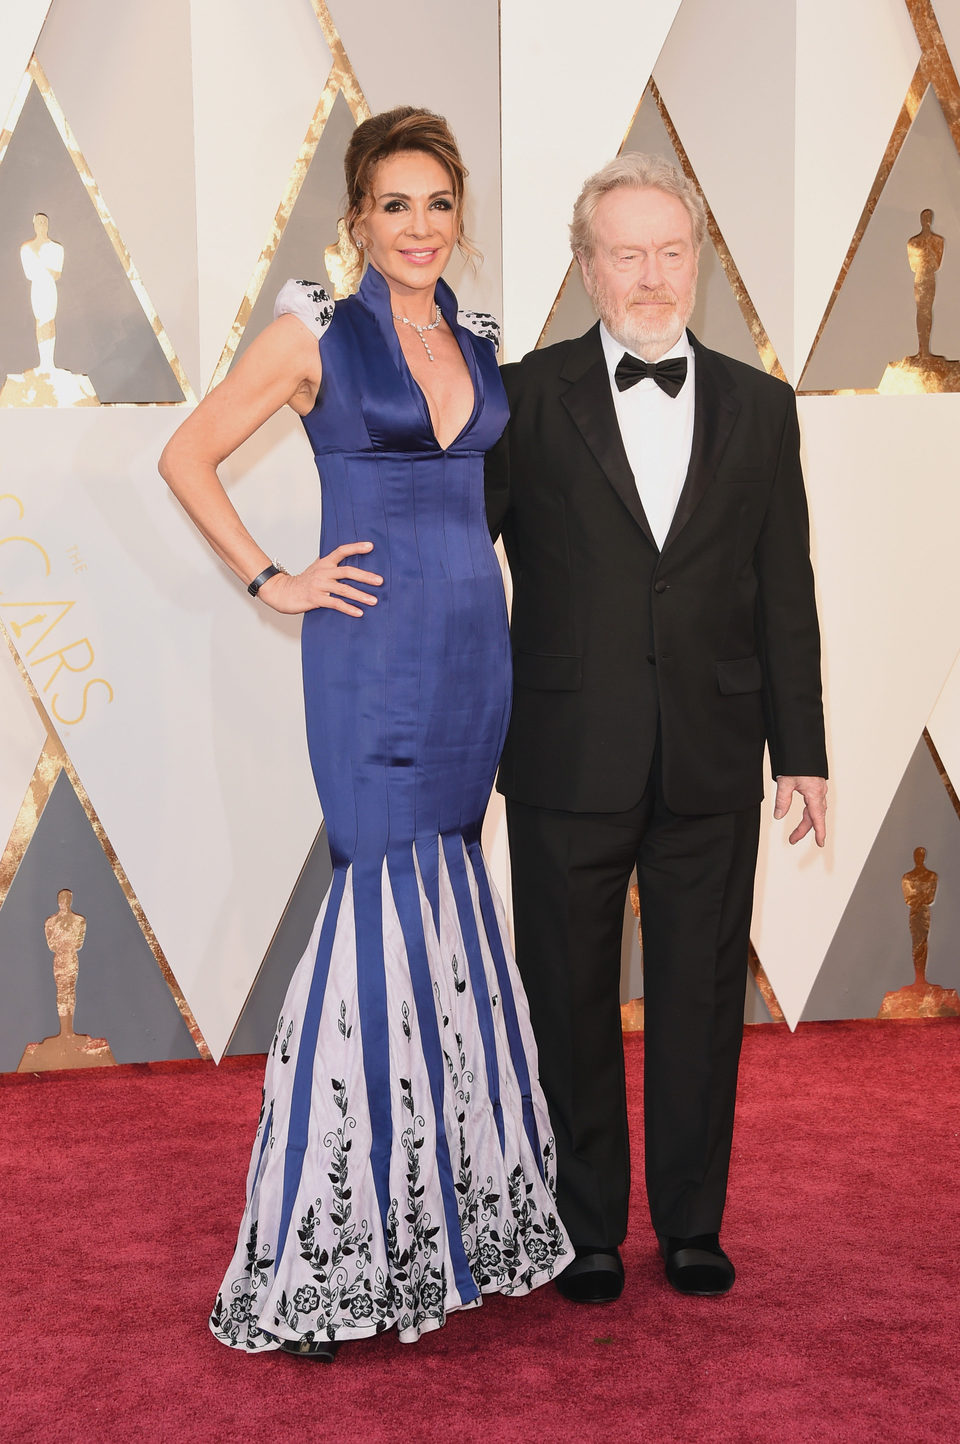 Ridley Scott and Giannina Facio at the Oscars 2016 red carpet